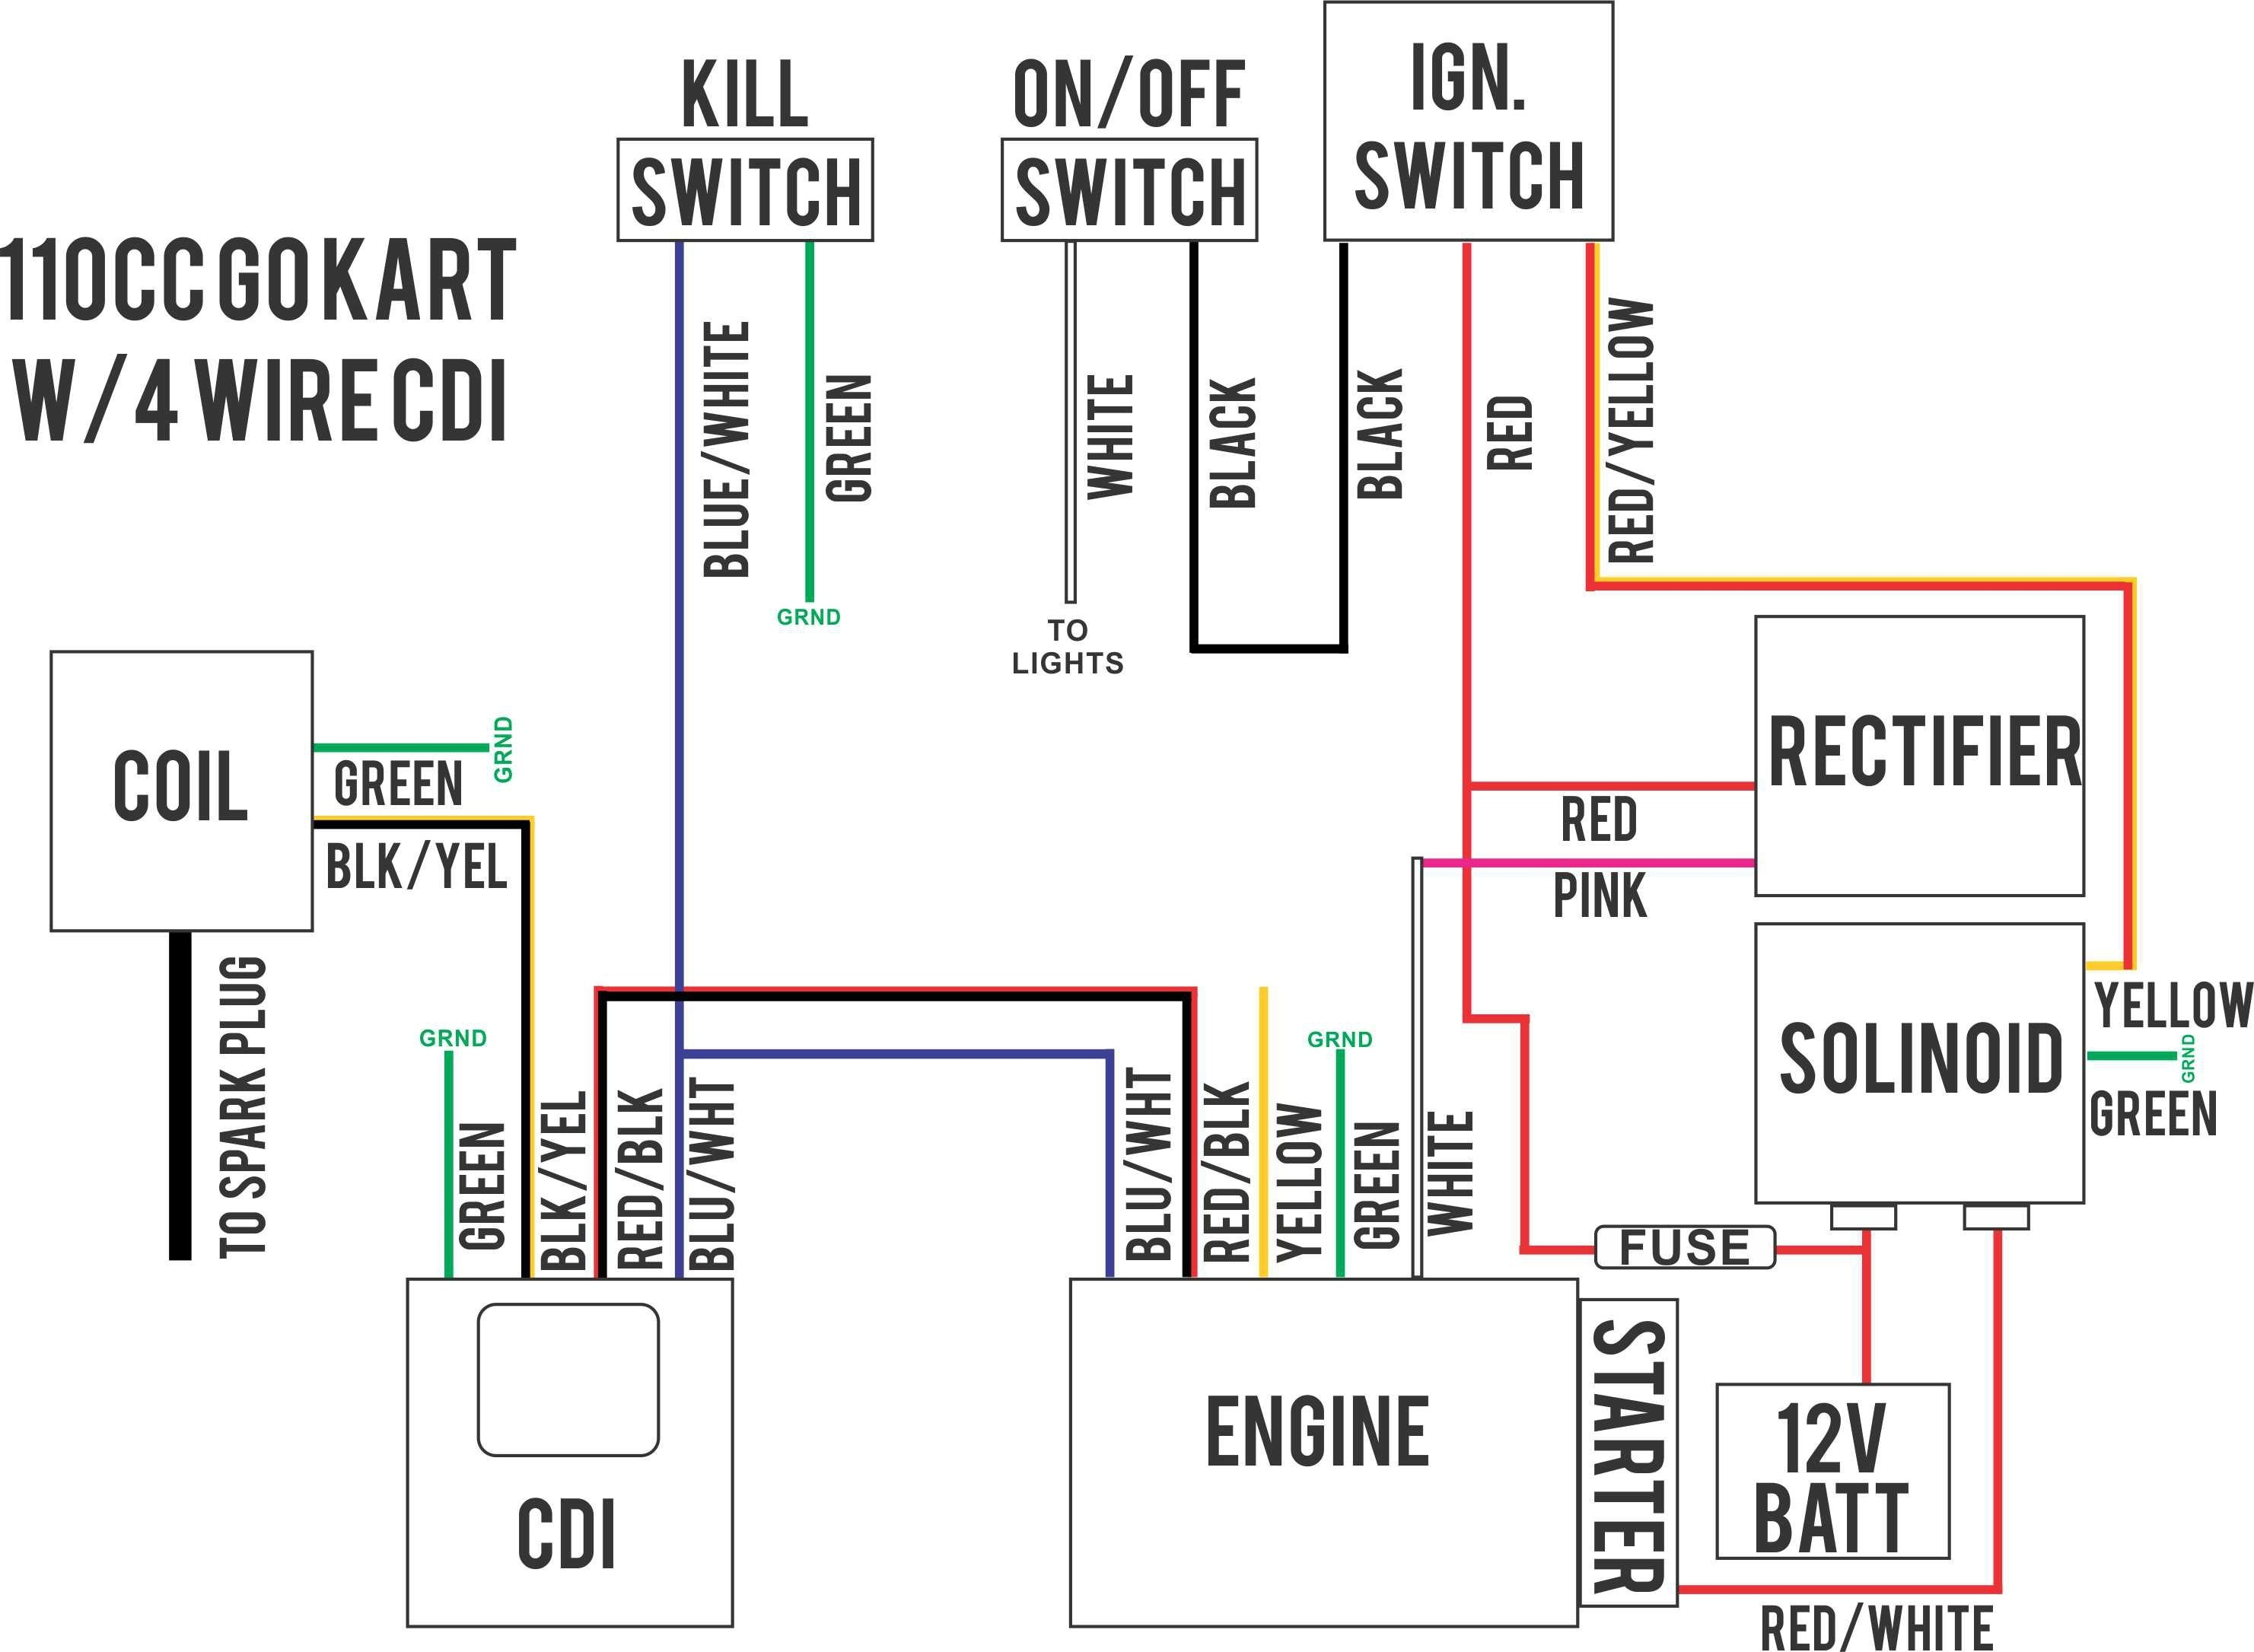 Bicikle 49cc Wiring Diagram. . Wiring Diagram For Electrical ... on friendship bracelet diagrams, engine diagrams, series and parallel circuits diagrams, electronic circuit diagrams, gmc fuse box diagrams, internet of things diagrams, lighting diagrams, electrical diagrams, honda motorcycle repair diagrams, transformer diagrams, pinout diagrams, led circuit diagrams, battery diagrams, hvac diagrams, troubleshooting diagrams, switch diagrams, smart car diagrams, sincgars radio configurations diagrams, motor diagrams,